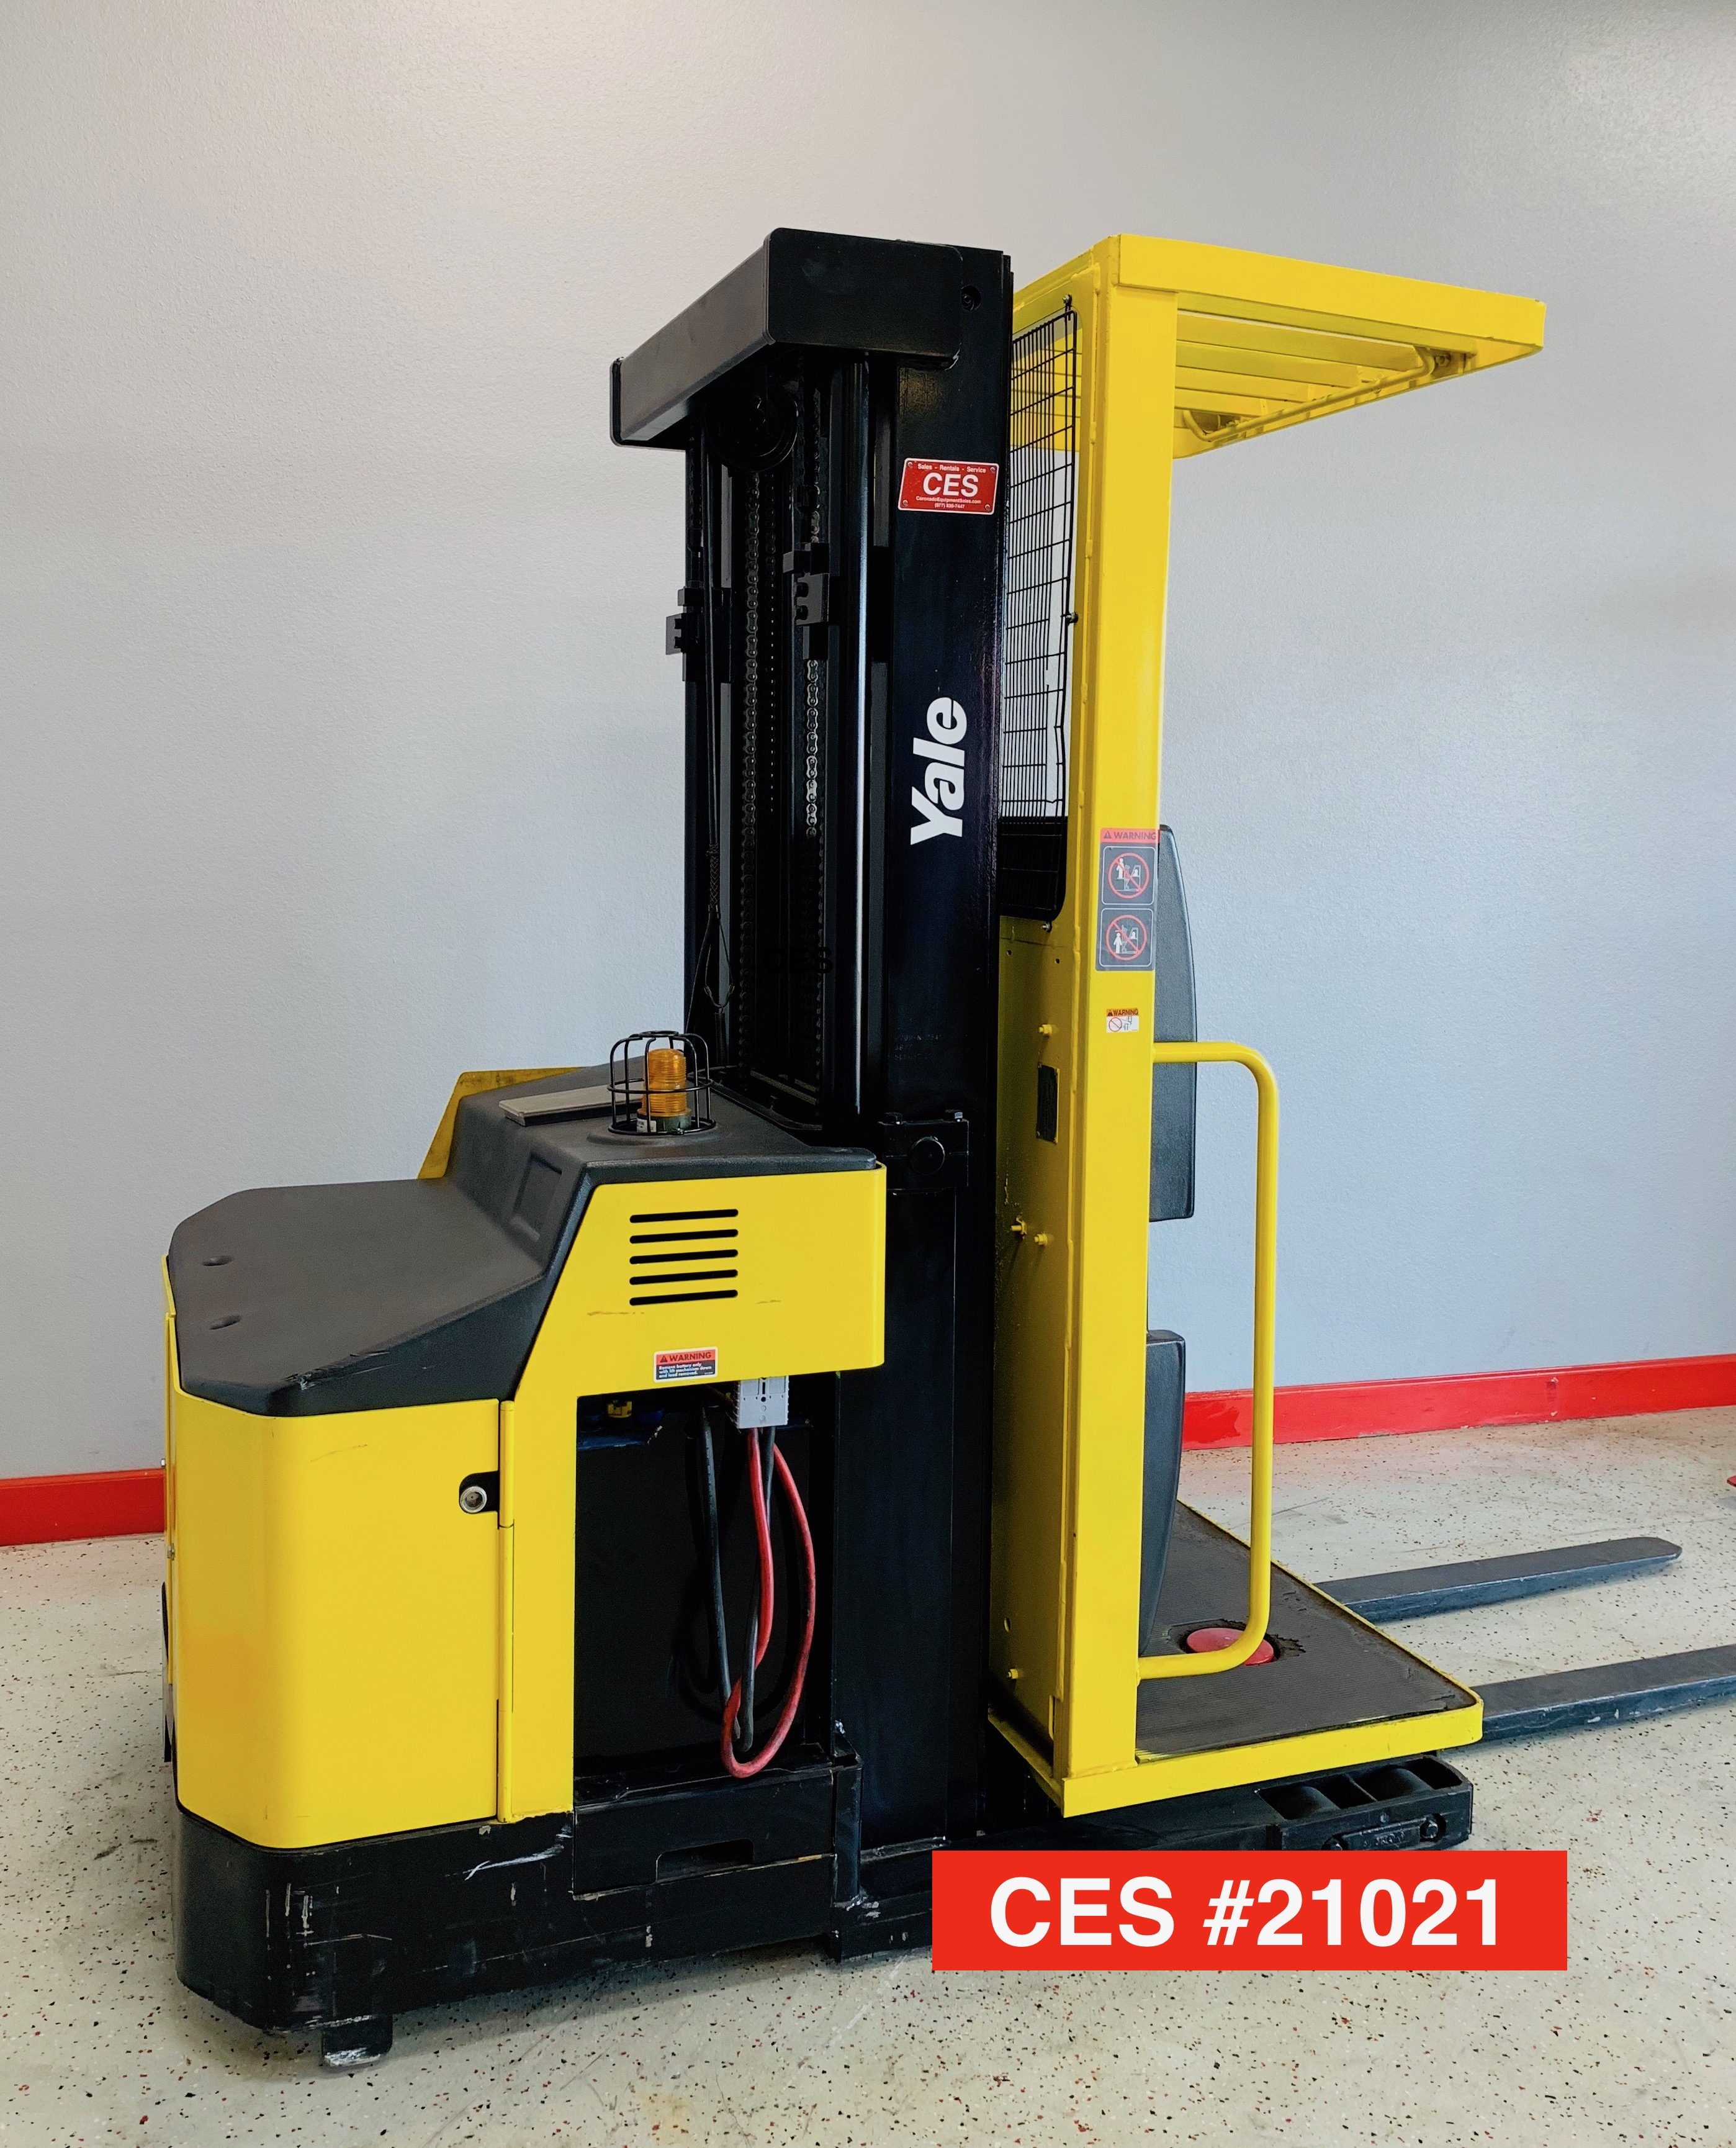 CES #21021 Yale OSO030 Order Picker